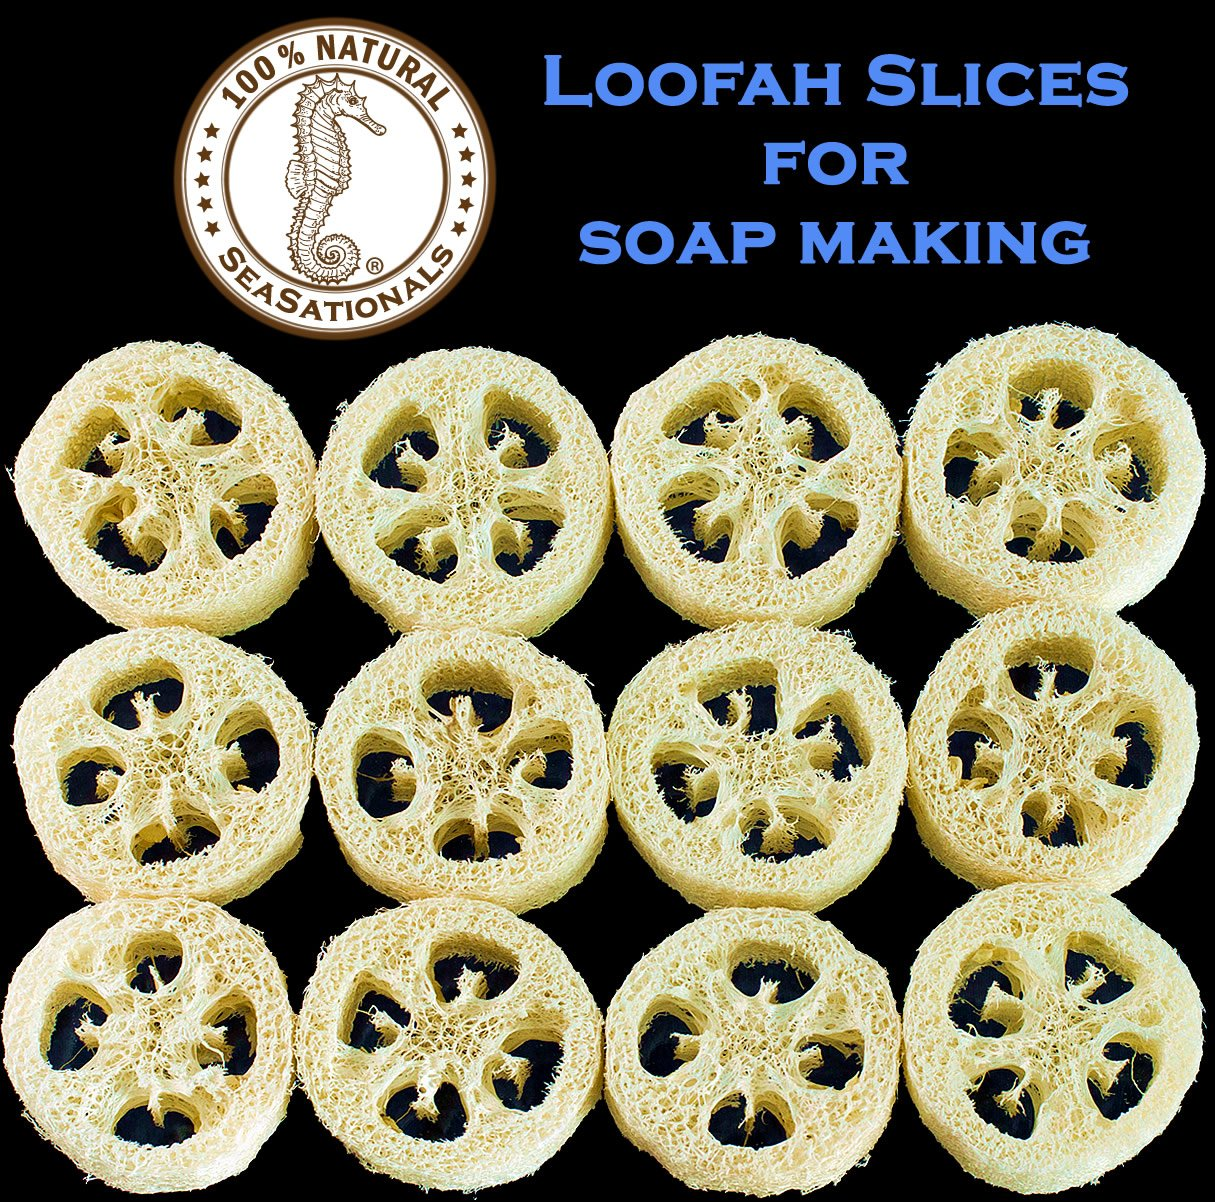 Premium Loofah Slices for Soap Making - Natural Luffa Cuts for DIY Soaping Products, Arts and Crafts - All Natural, Dry & Ready for Use Sliced Loofah (36)